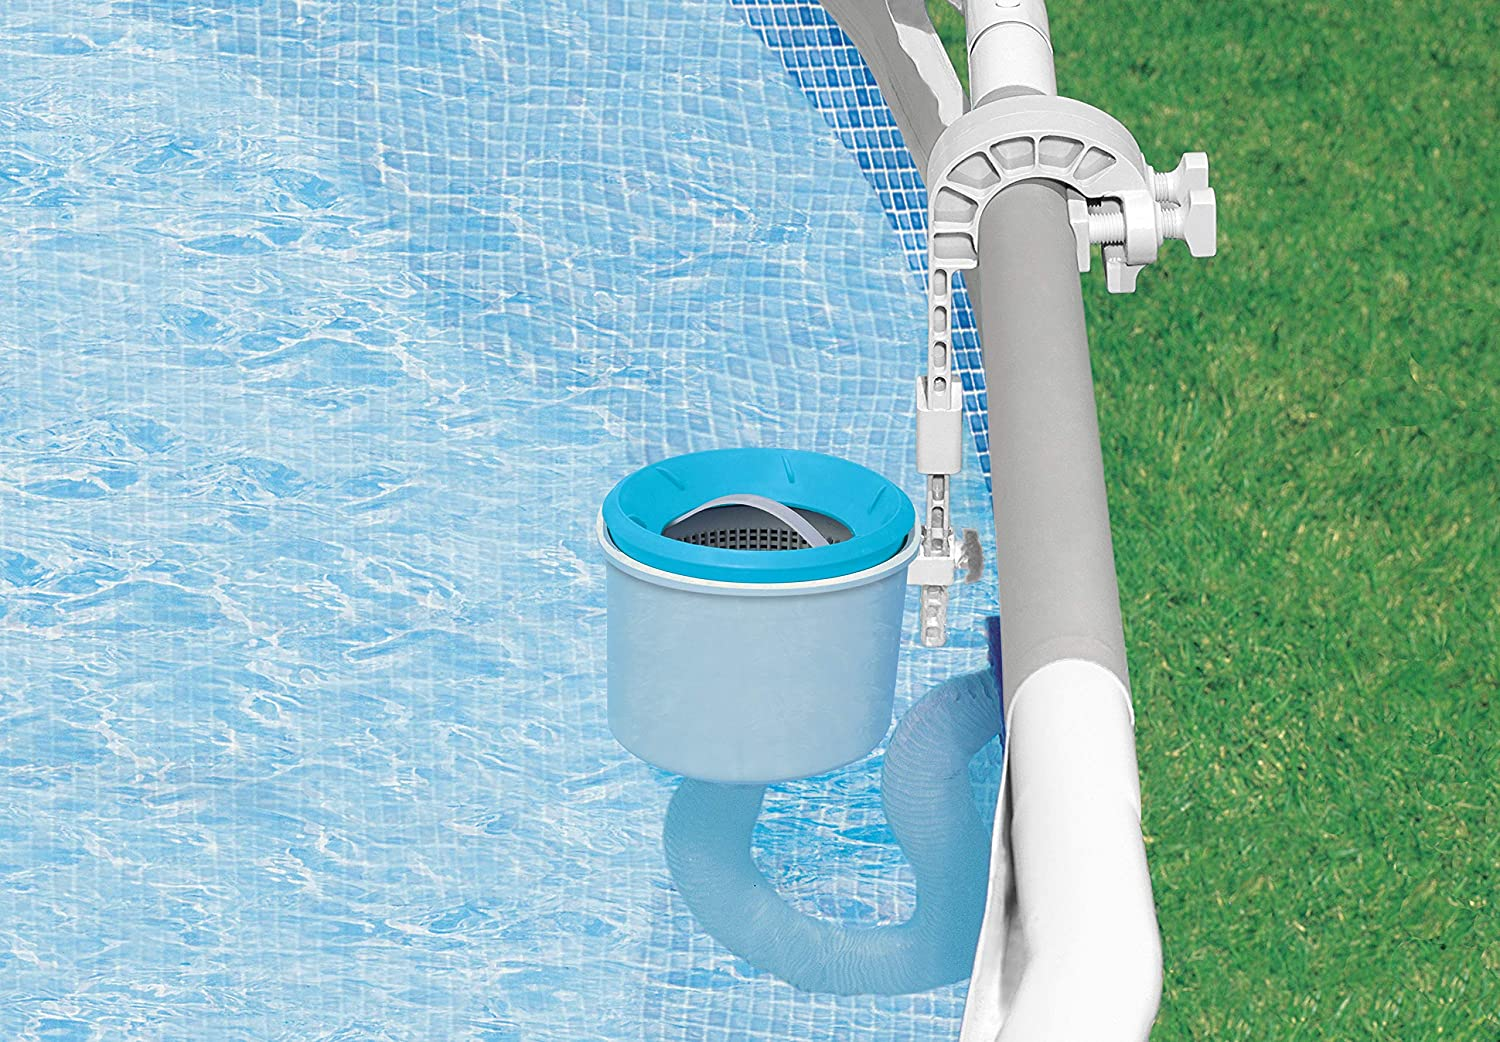 Intex Deluxe Wall Max 57% OFF Complete Free Shipping Mount Surface Skimmer